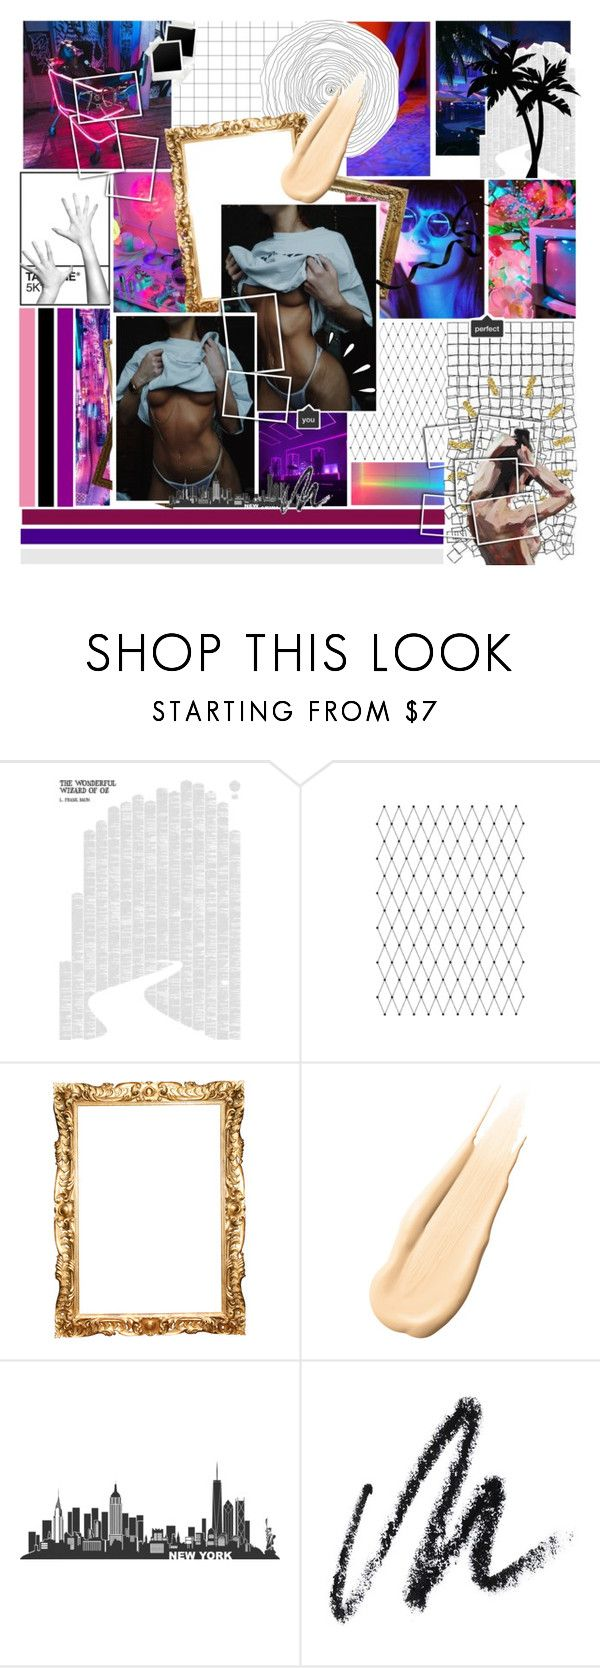 """welcome to camp, please go through the security center before you enter."" by pvssion ❤ liked on Polyvore featuring Spineless Classics, Hourglass Cosmetics, Swarovski, Benefit and Old Navy"